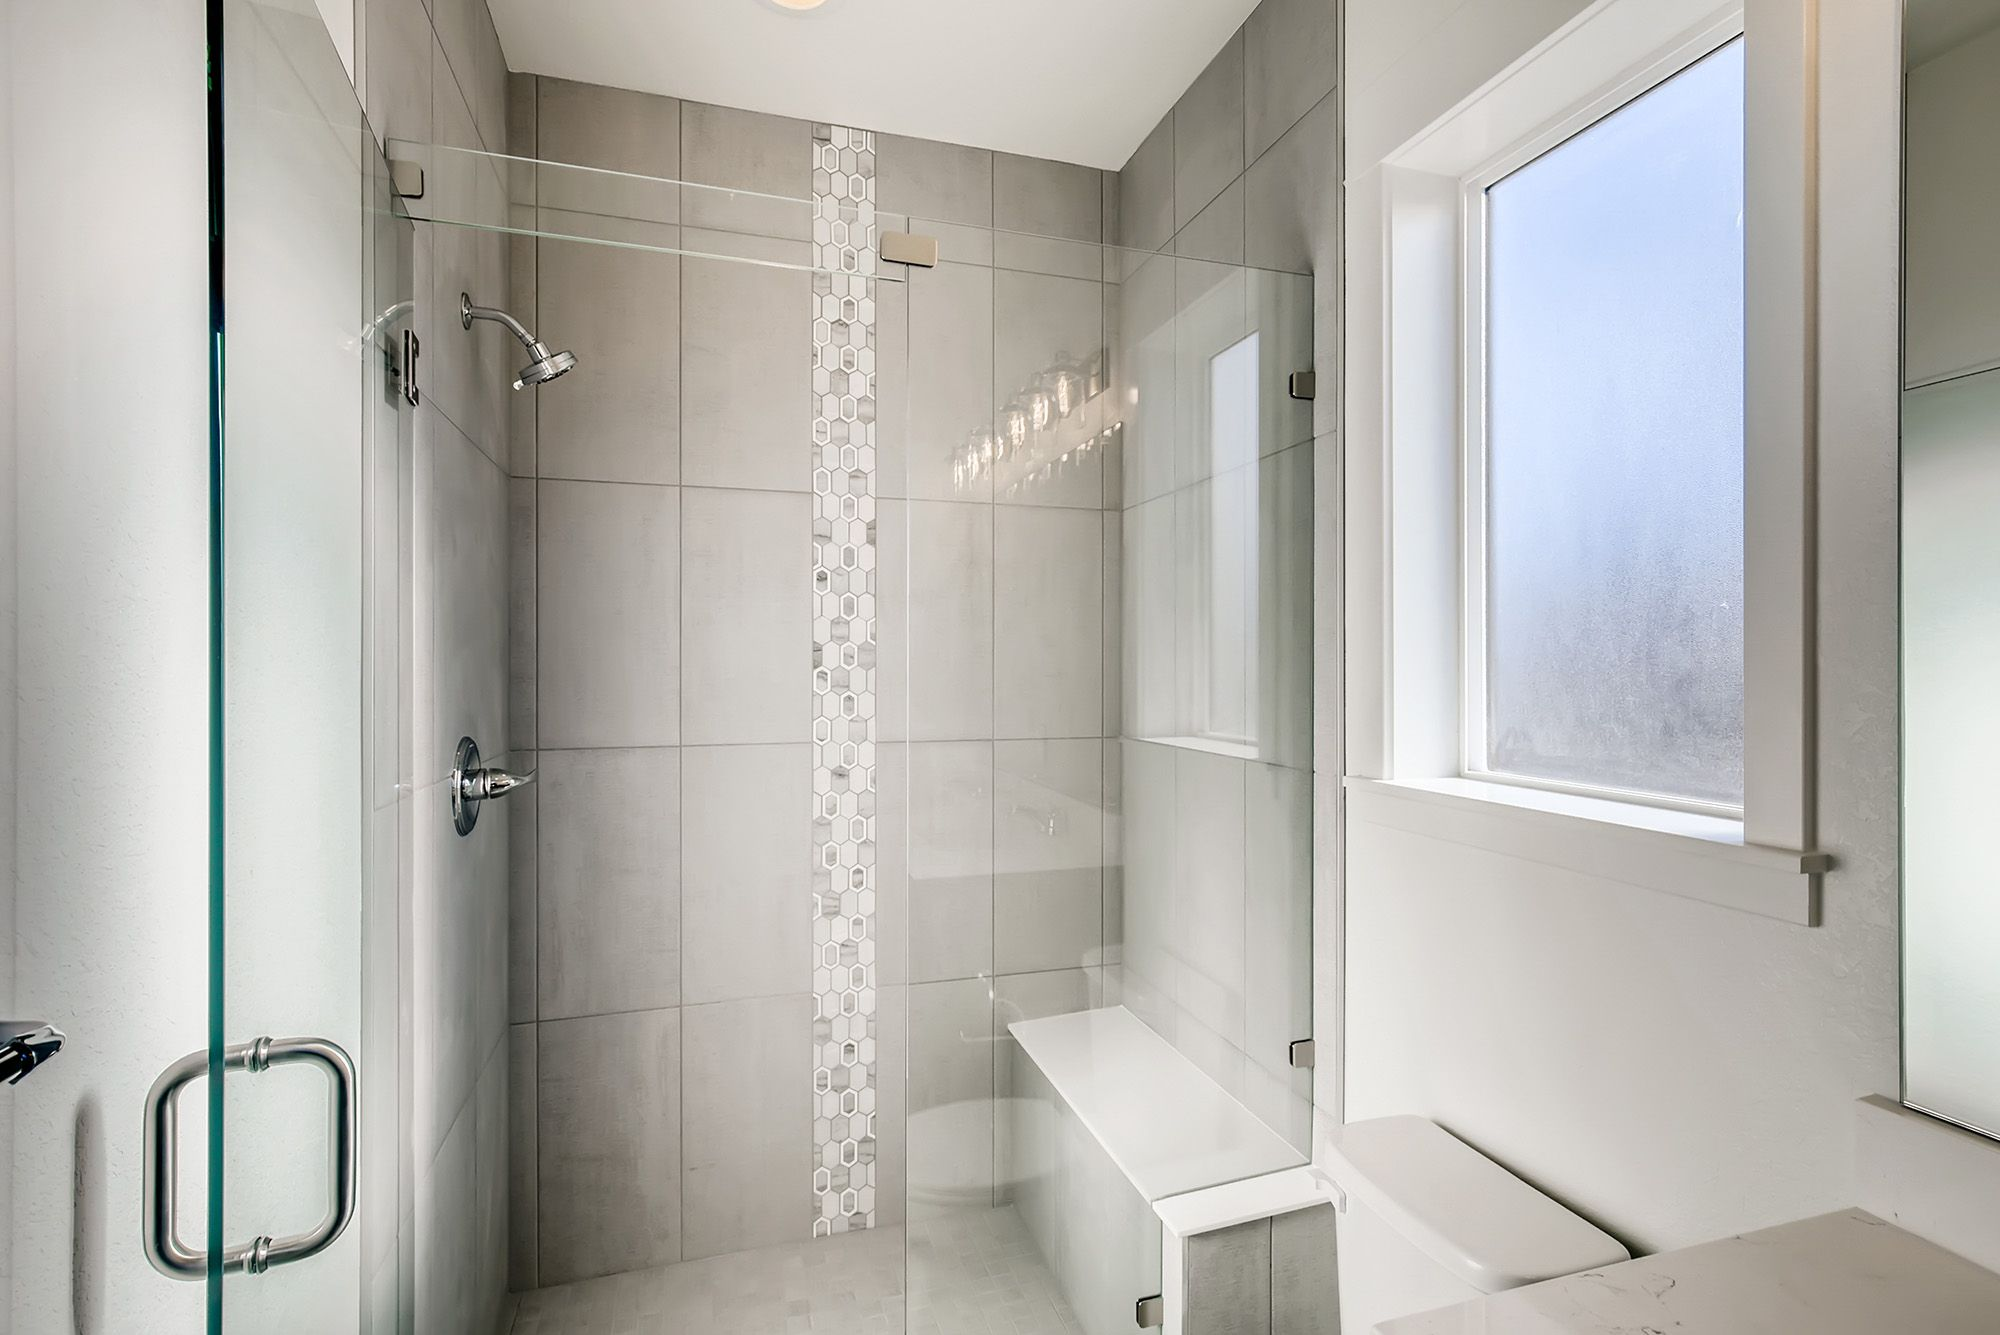 Bathroom featured in the Balance By Thrive Home Builders in Boulder-Longmont, CO